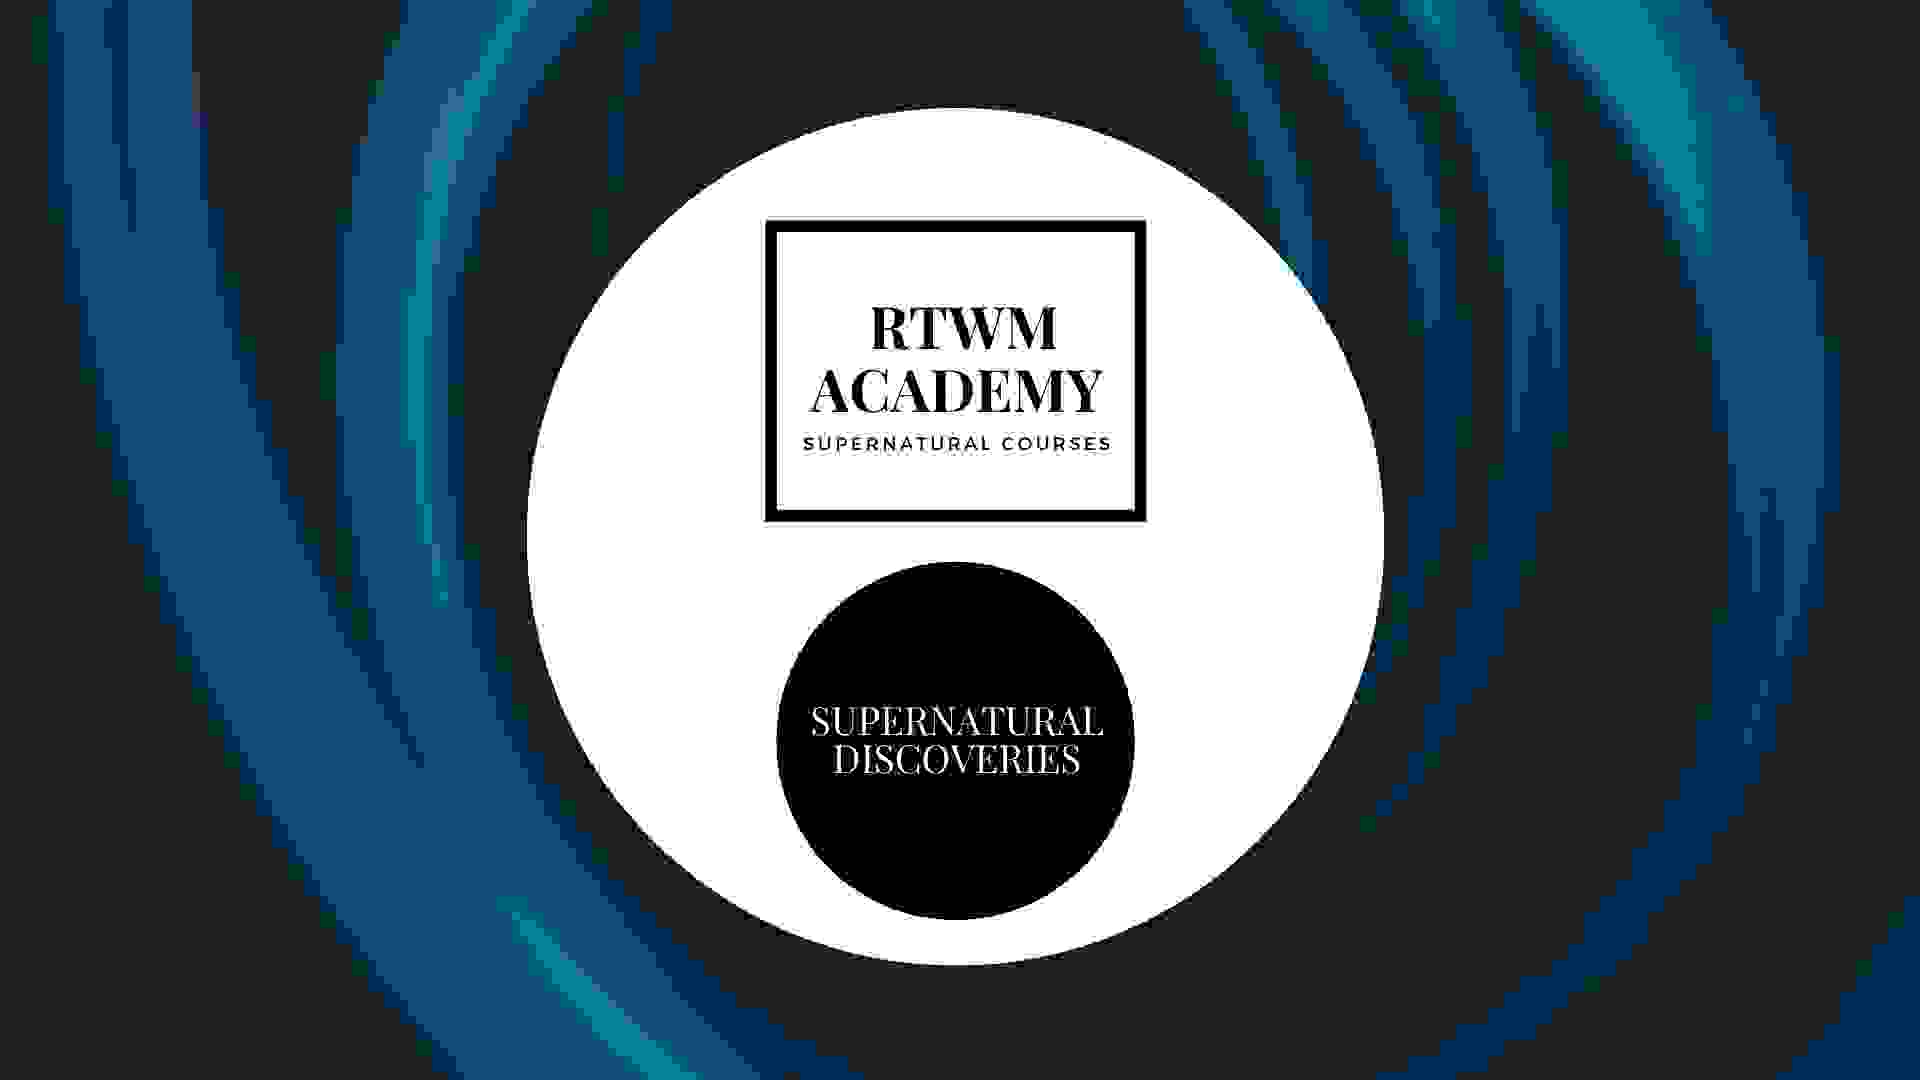 RTWM Supernatural Academy, powered by Raphael The Worlds Medium, unleash your star power